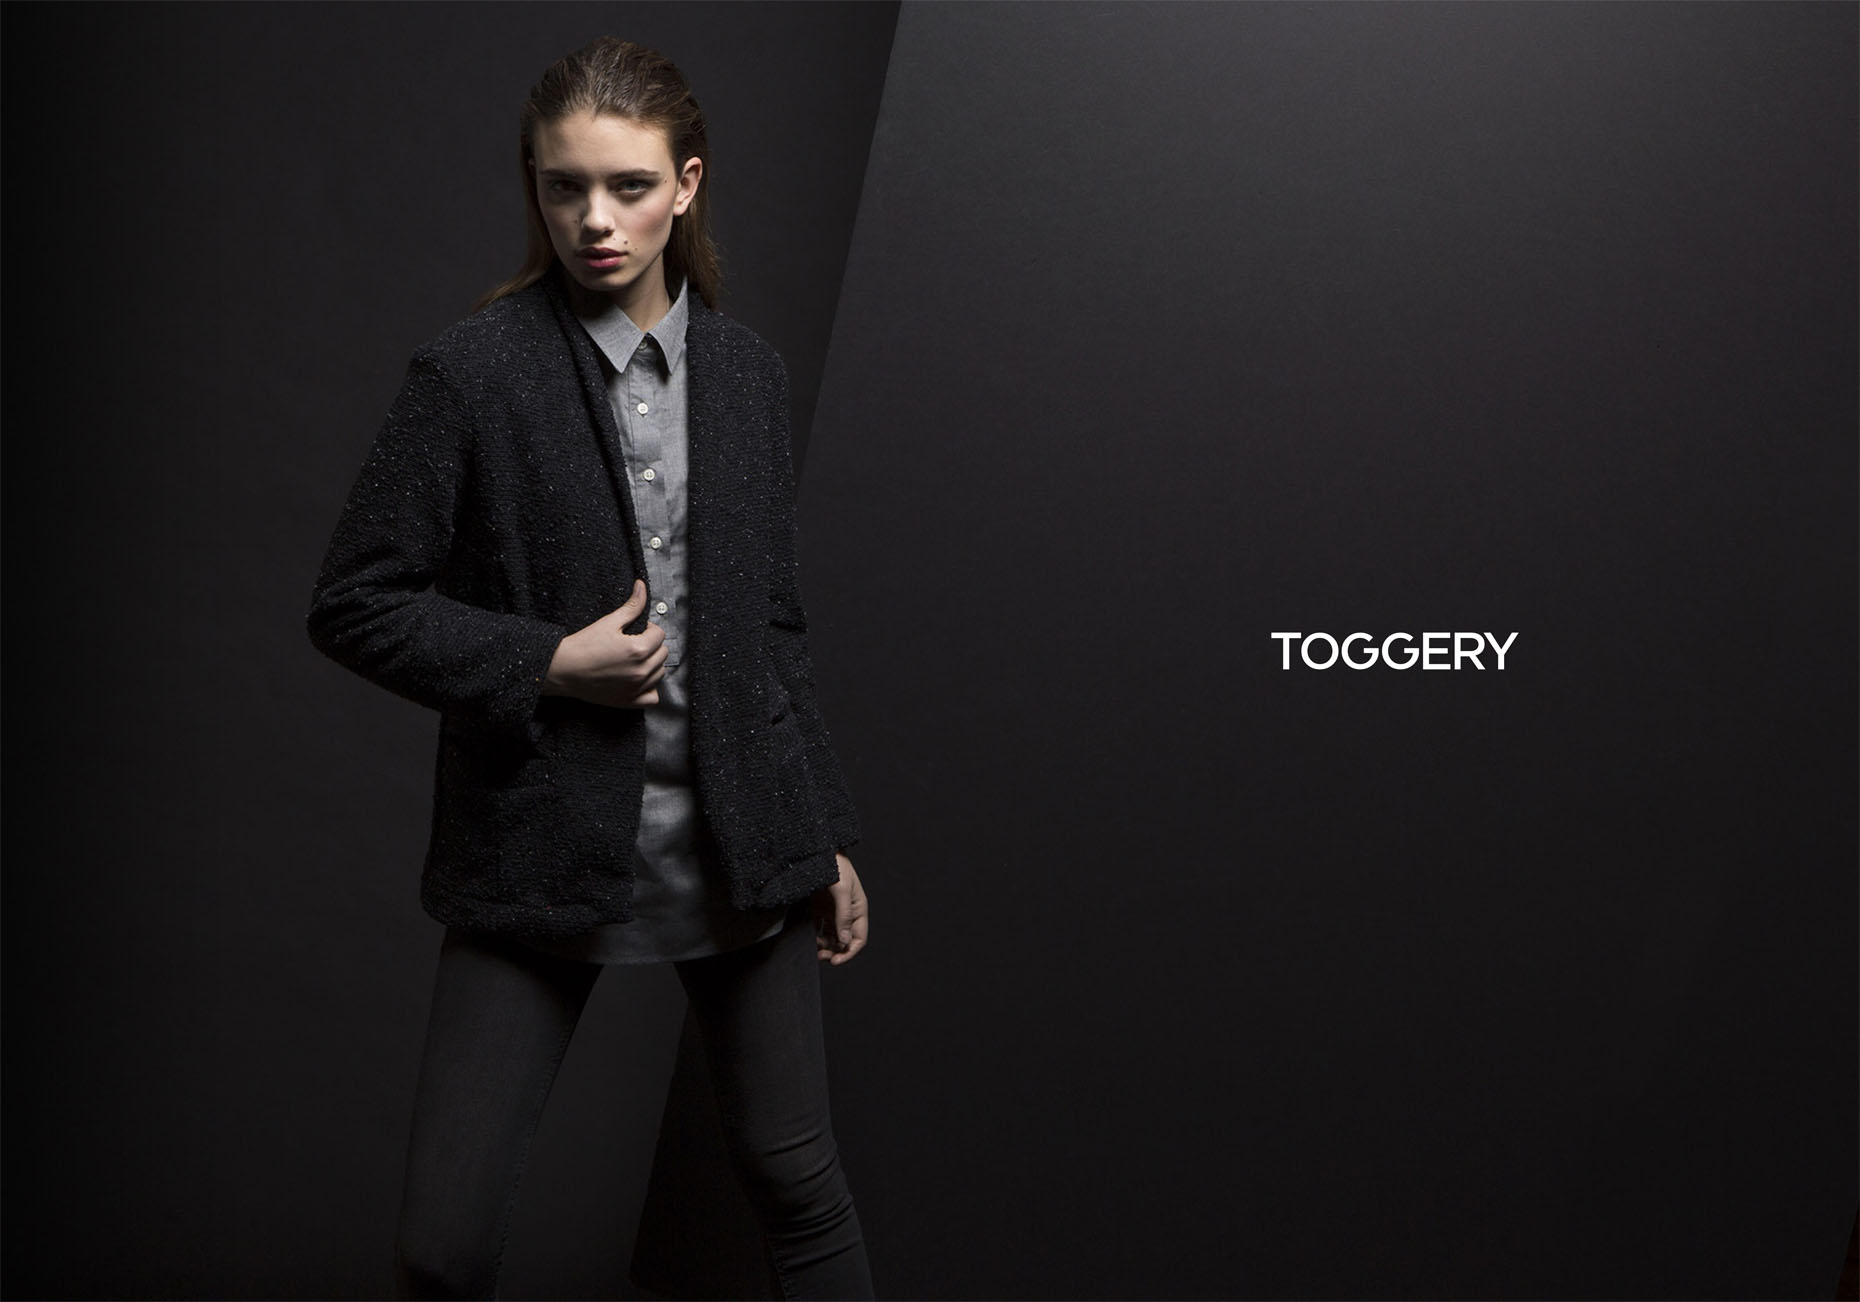 toggery_woven_collection-4 copy